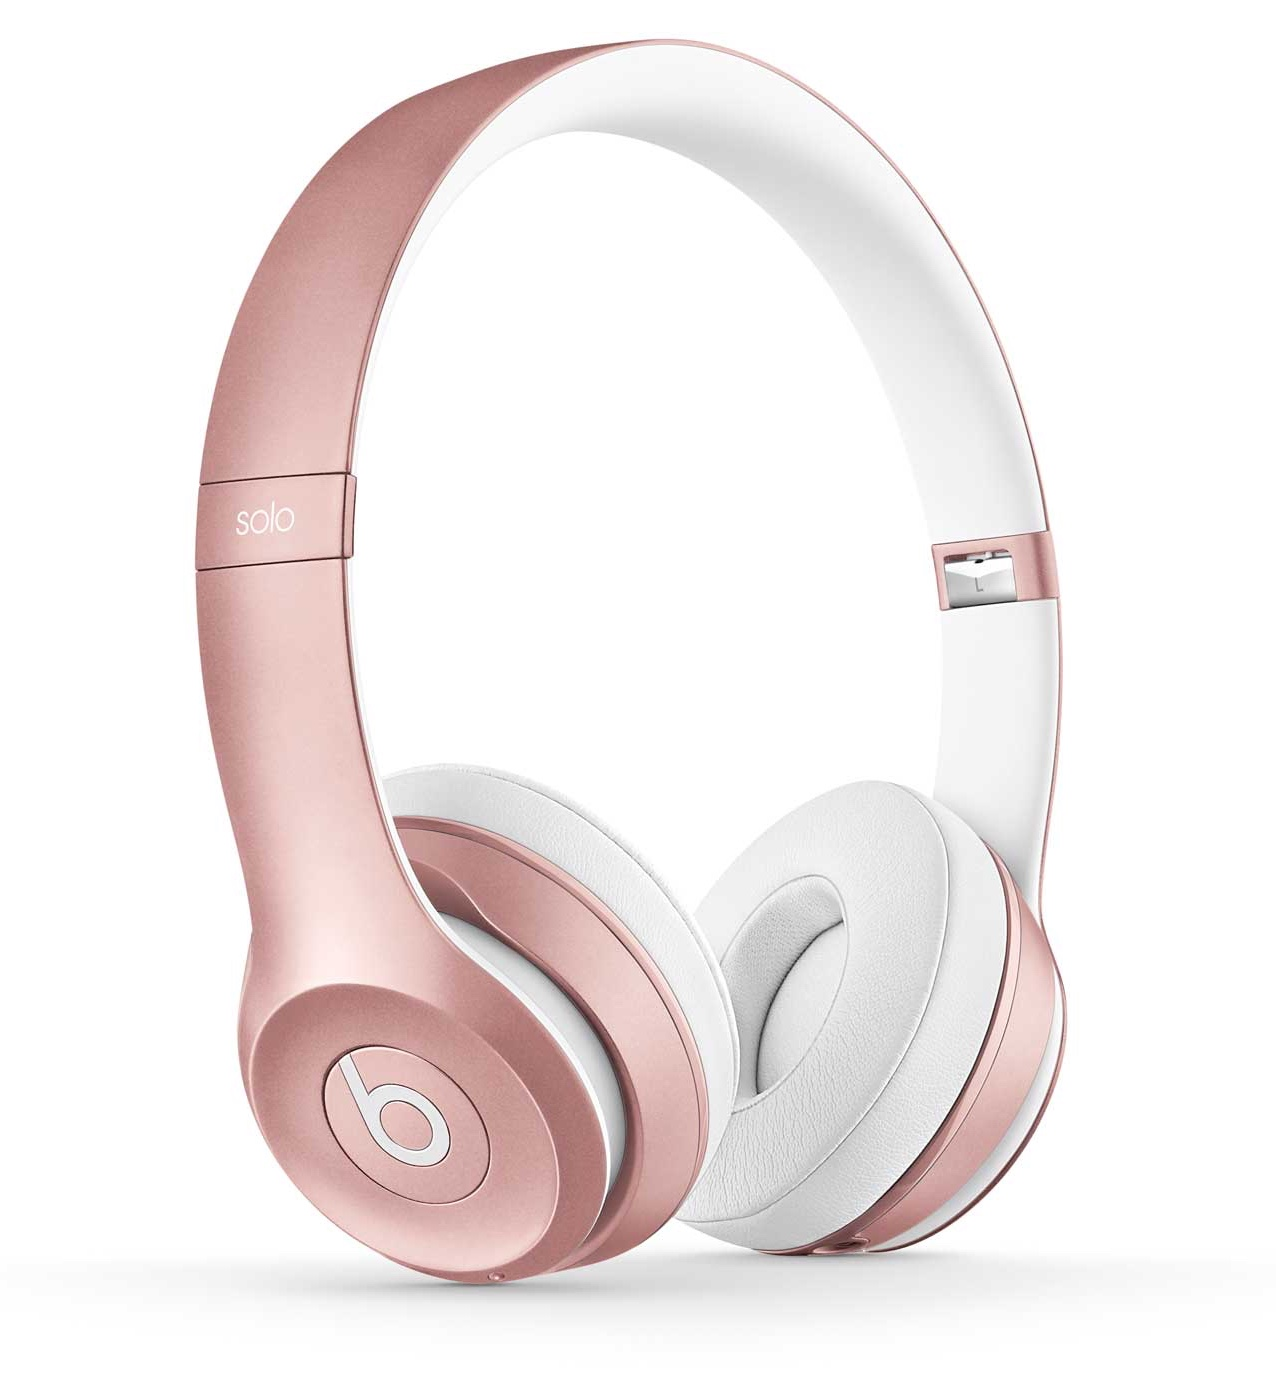 beats solo2 wireless headphones now available in rose gold image gallery